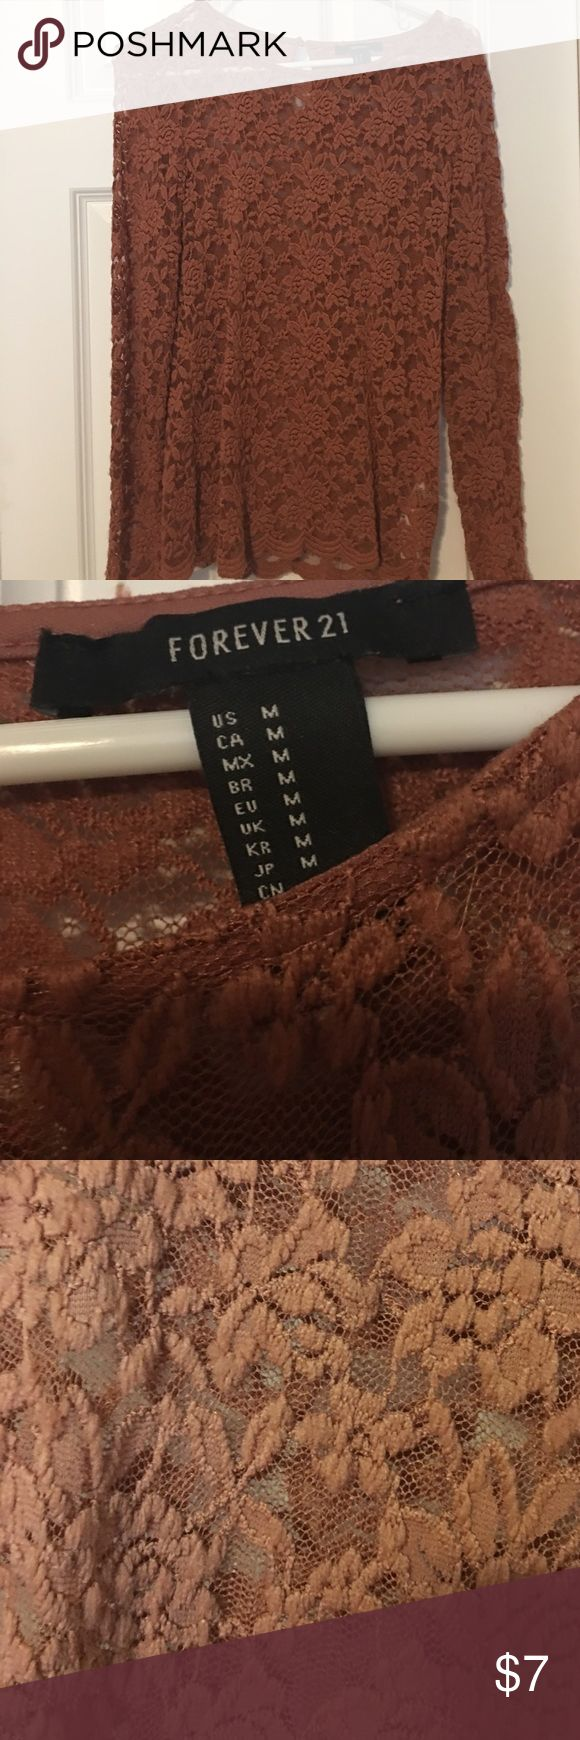 Sheer lace long sleeved top size M Pretty rust brown long sleeved sheer lace top from Forever 21. See thru and looks cute with a black tank underneath. No rips or jokes, great condition. Size medium. Forever 21 Tops